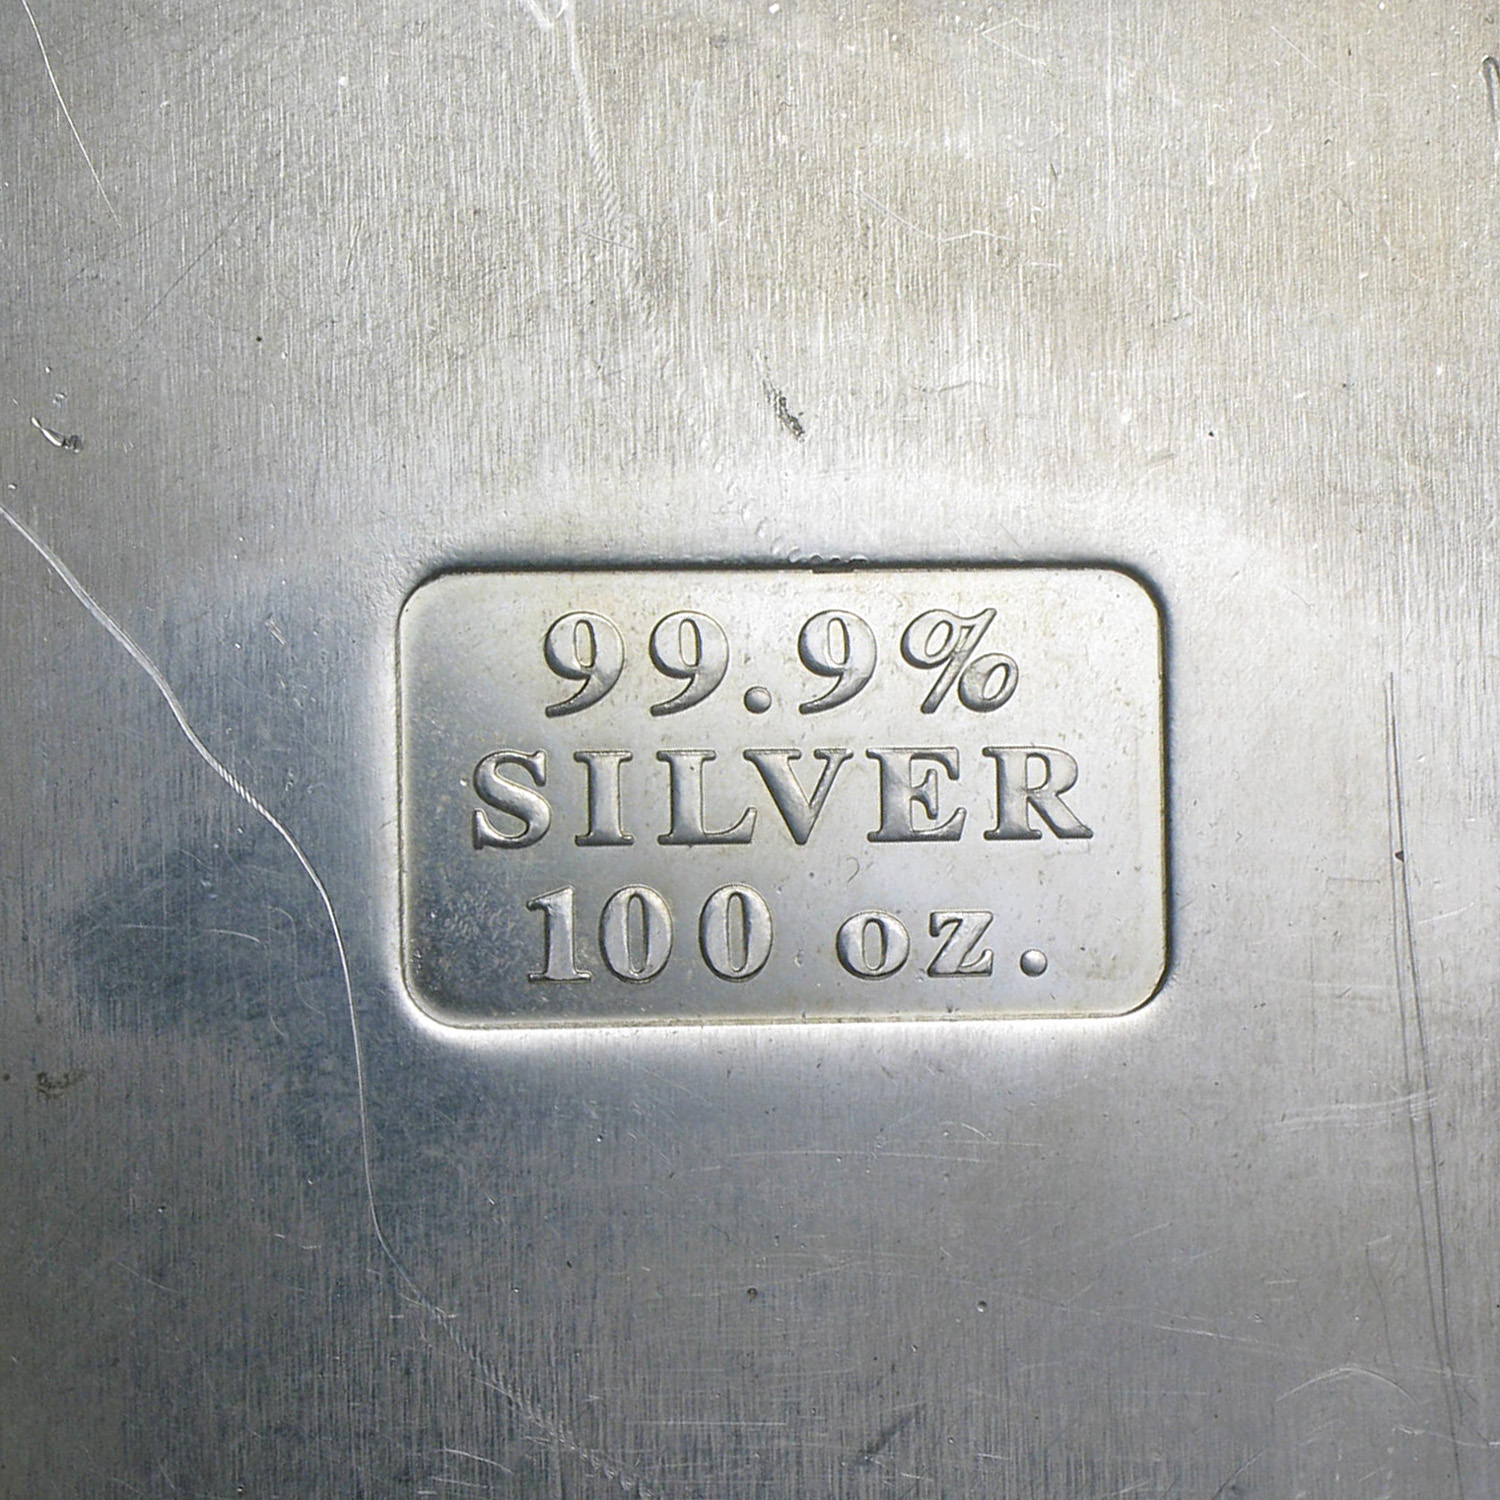 100 oz Silver Bars - Perth Mint (Vintage/Pressed)